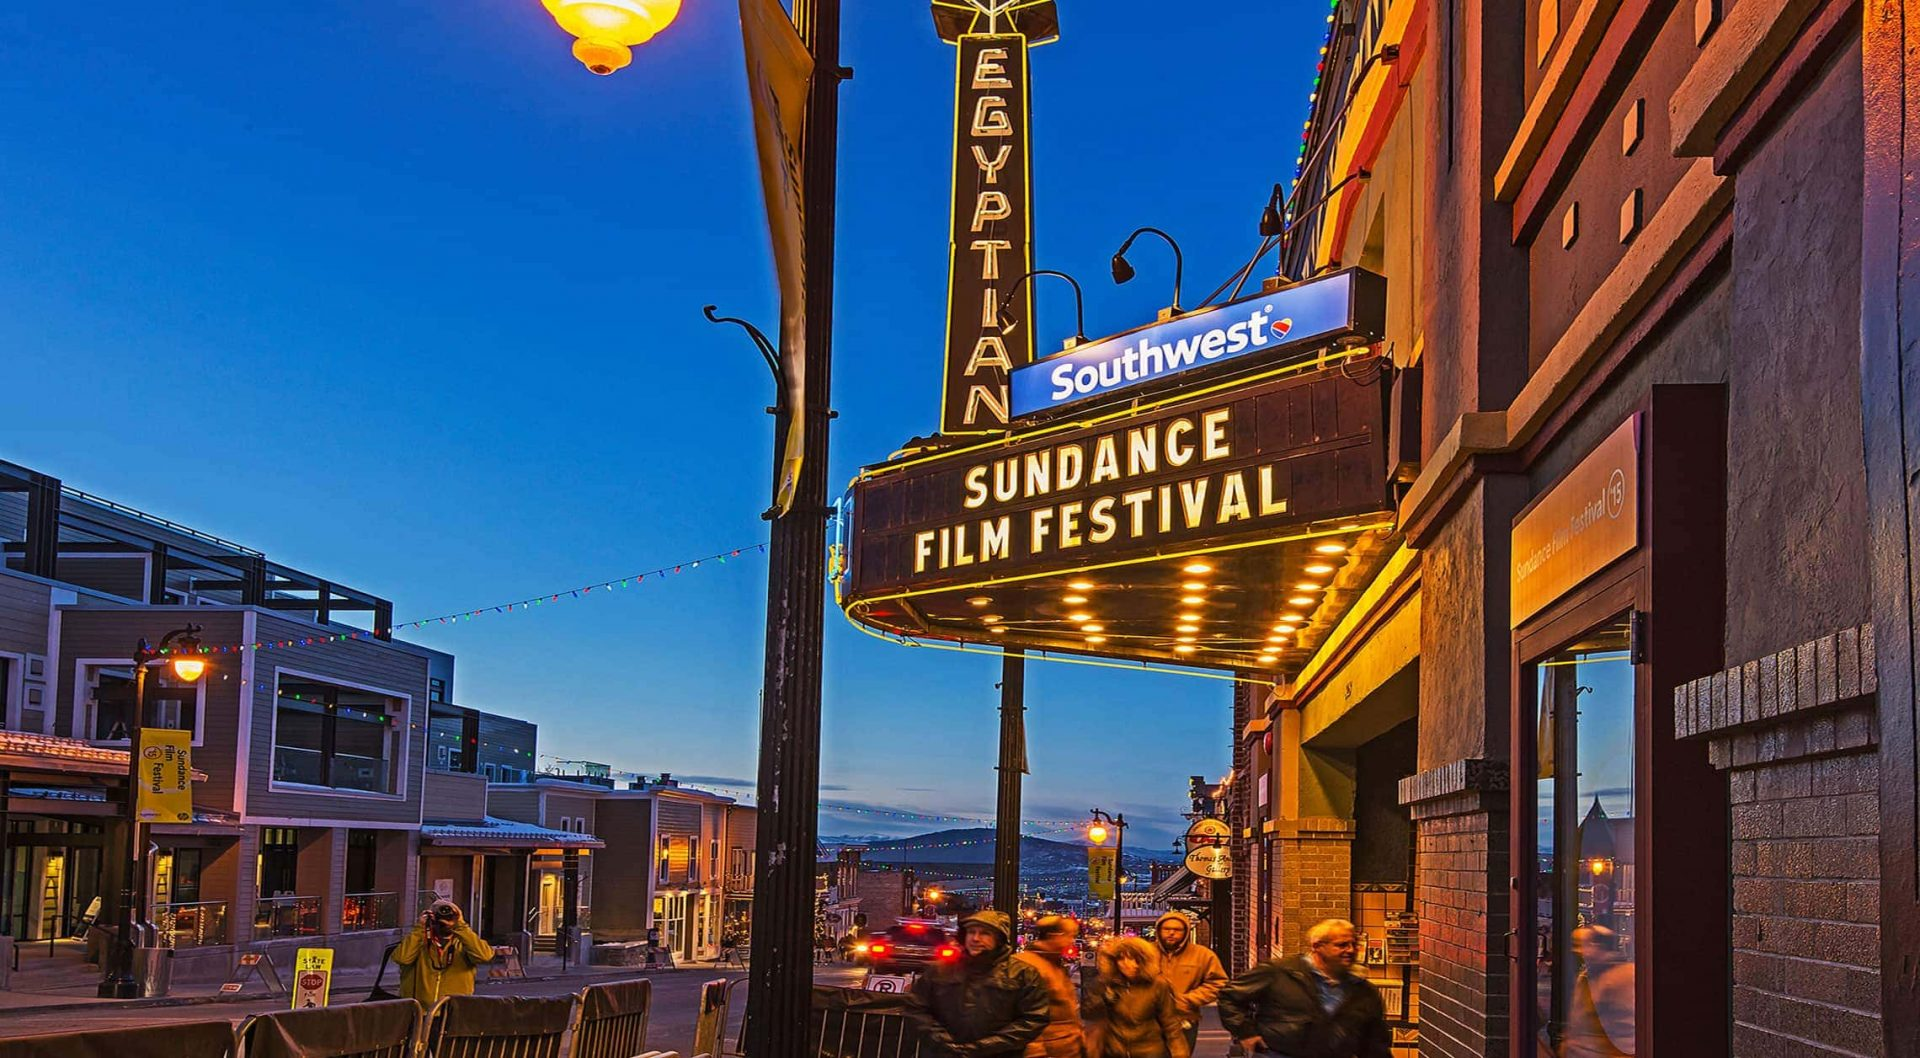 American cinema is doing just fine. In doubt? Check out the Sundance Film Festival